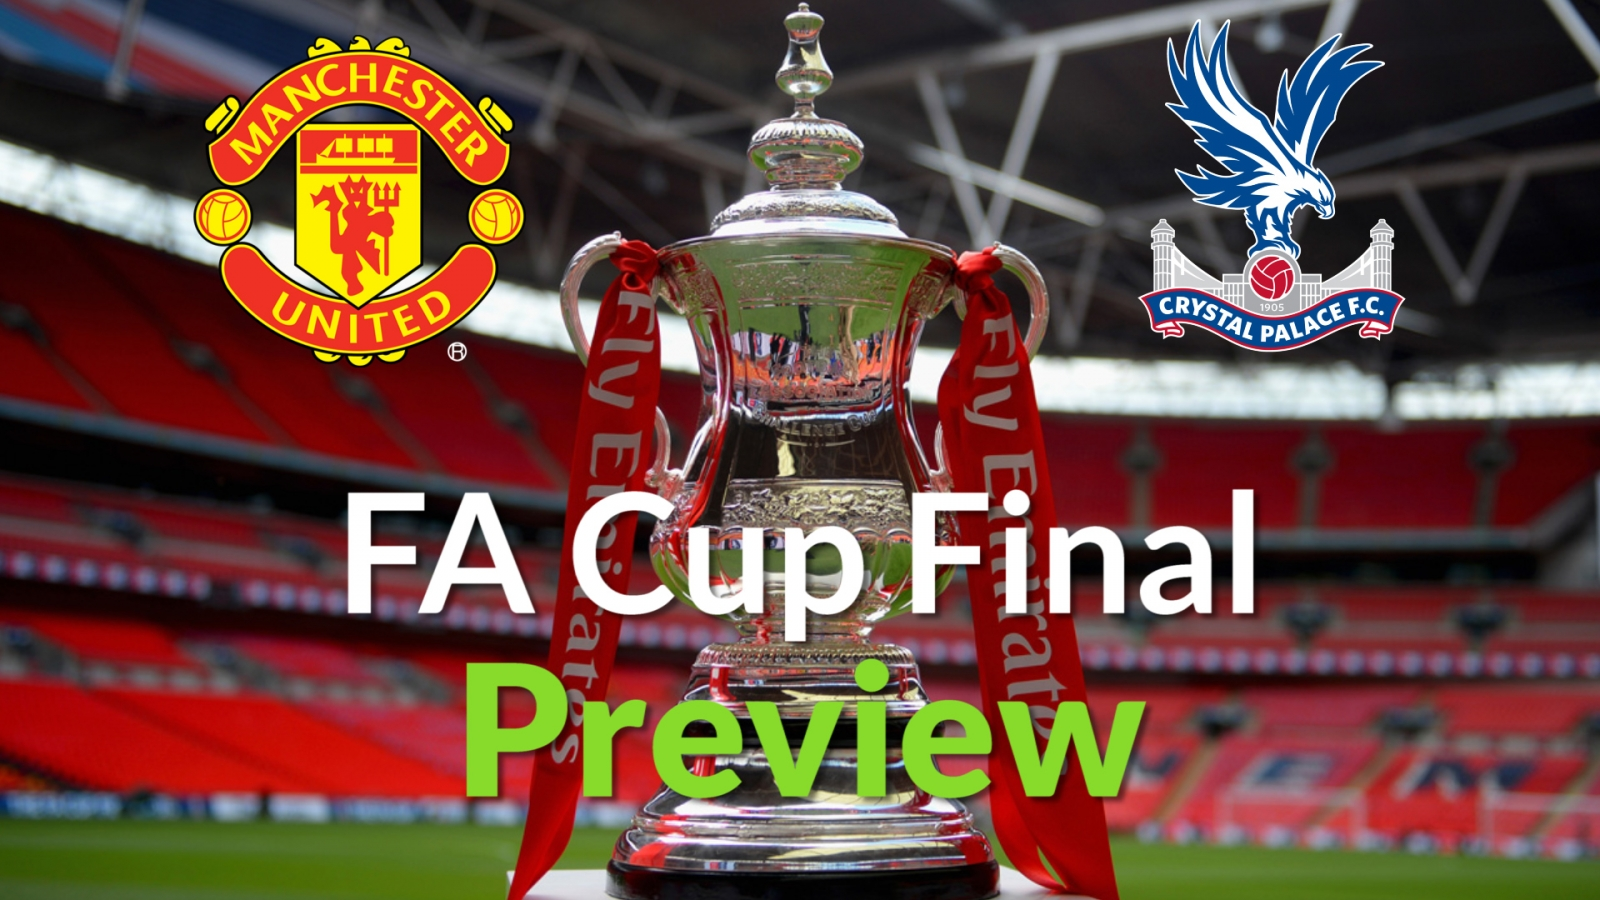 FA Cup Final 2016 Manchester United V Crystal Palace